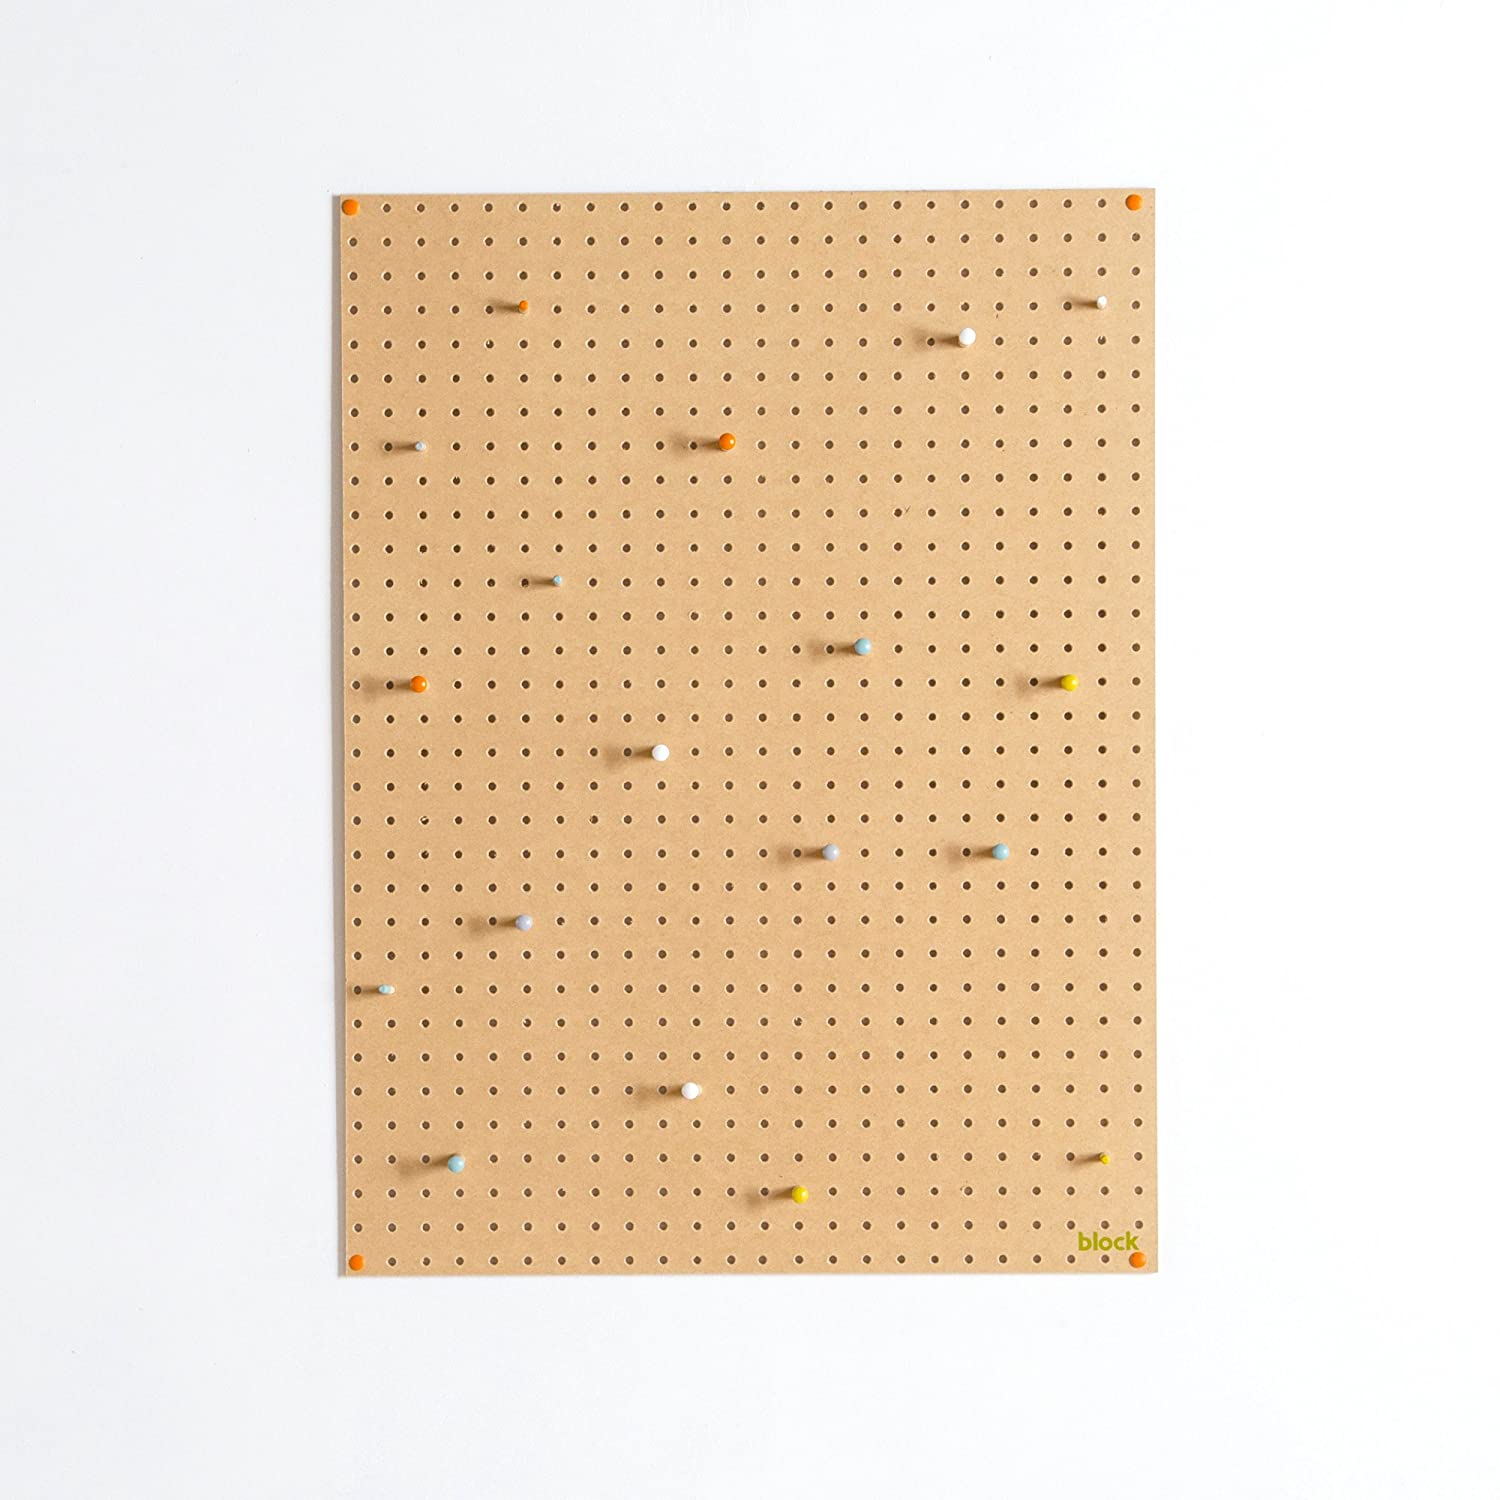 Block Light Blue Pegboard with Wooden Pegs, Small 58LB